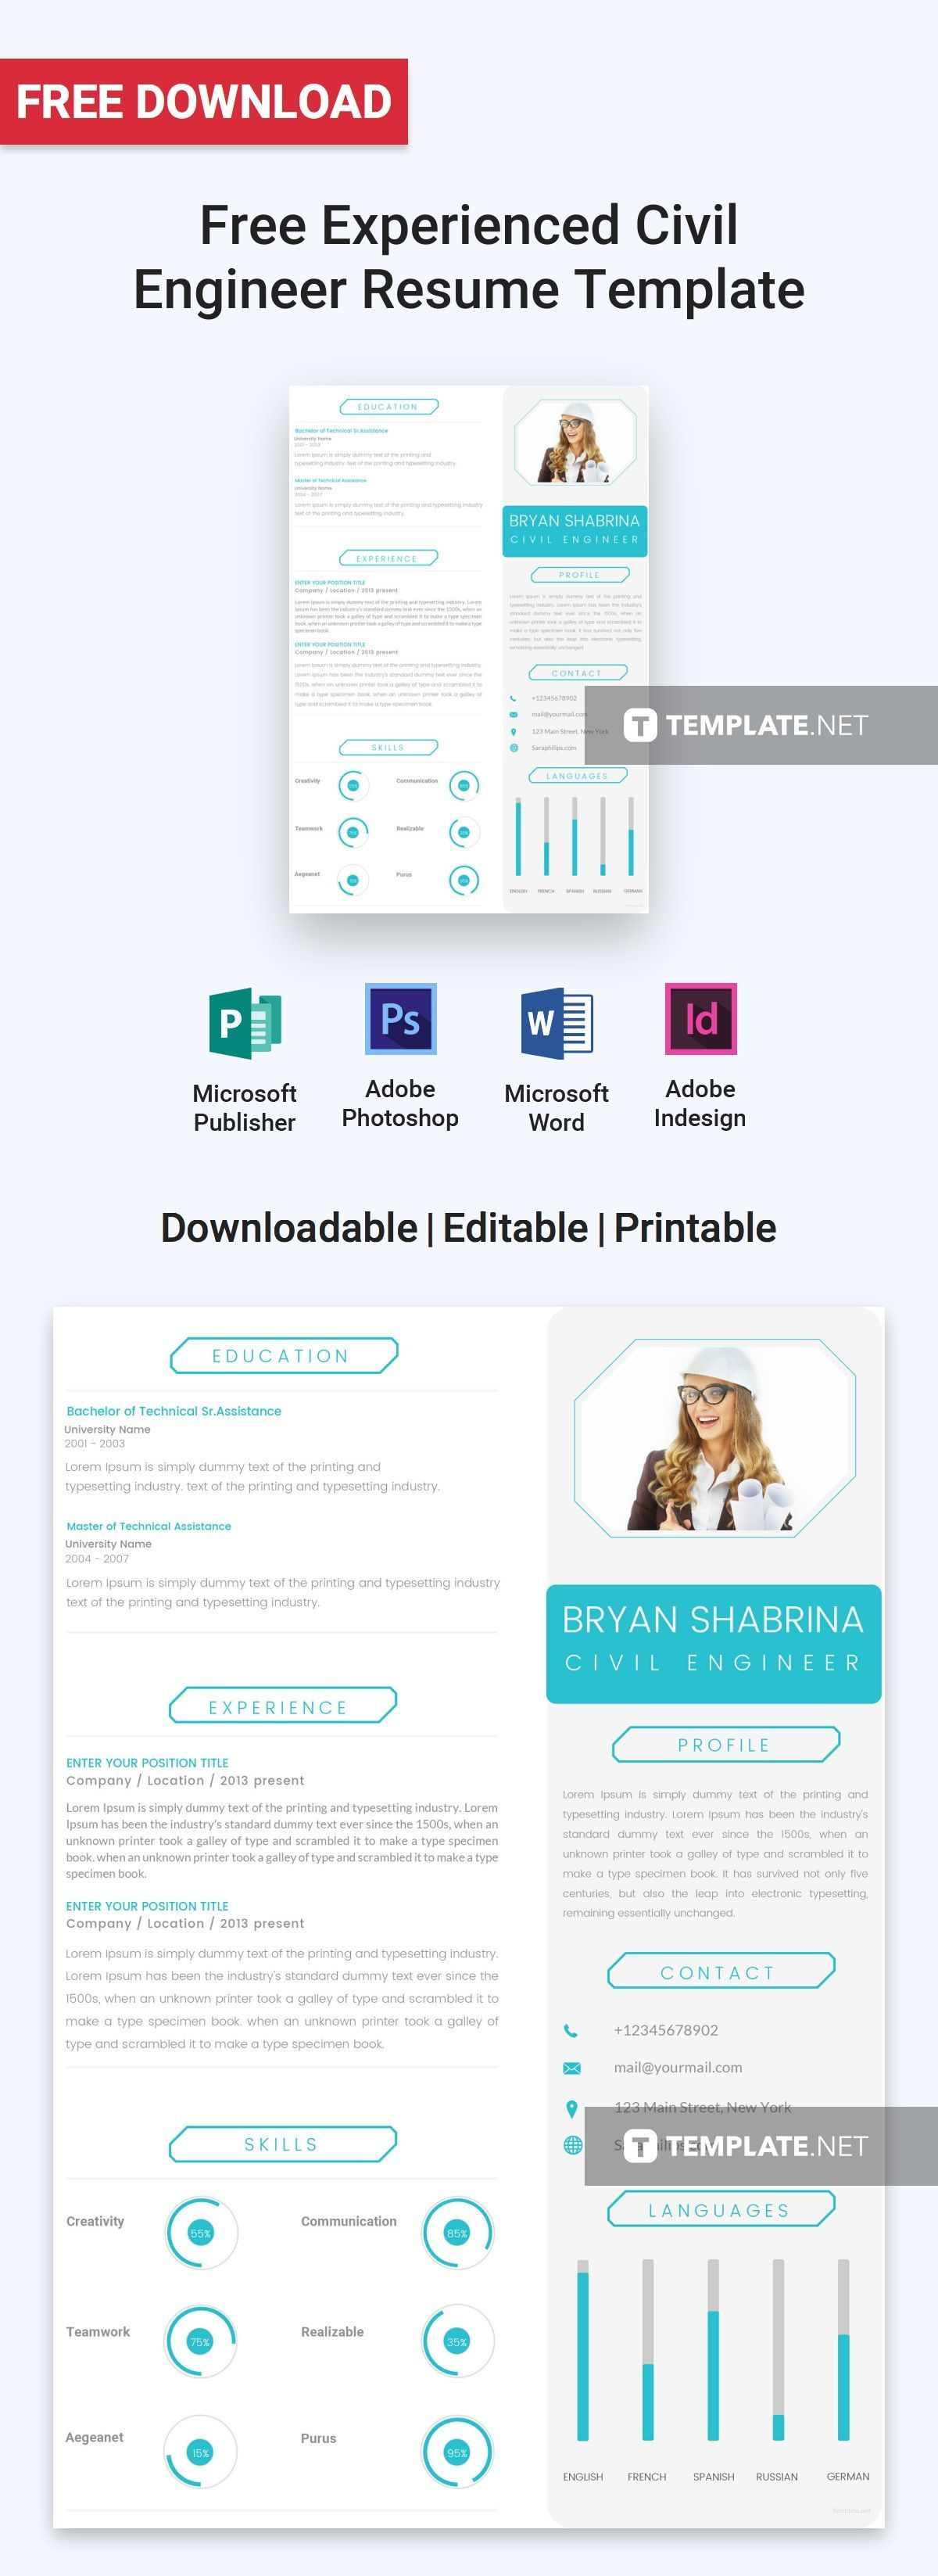 A modern resume template that you can download for free